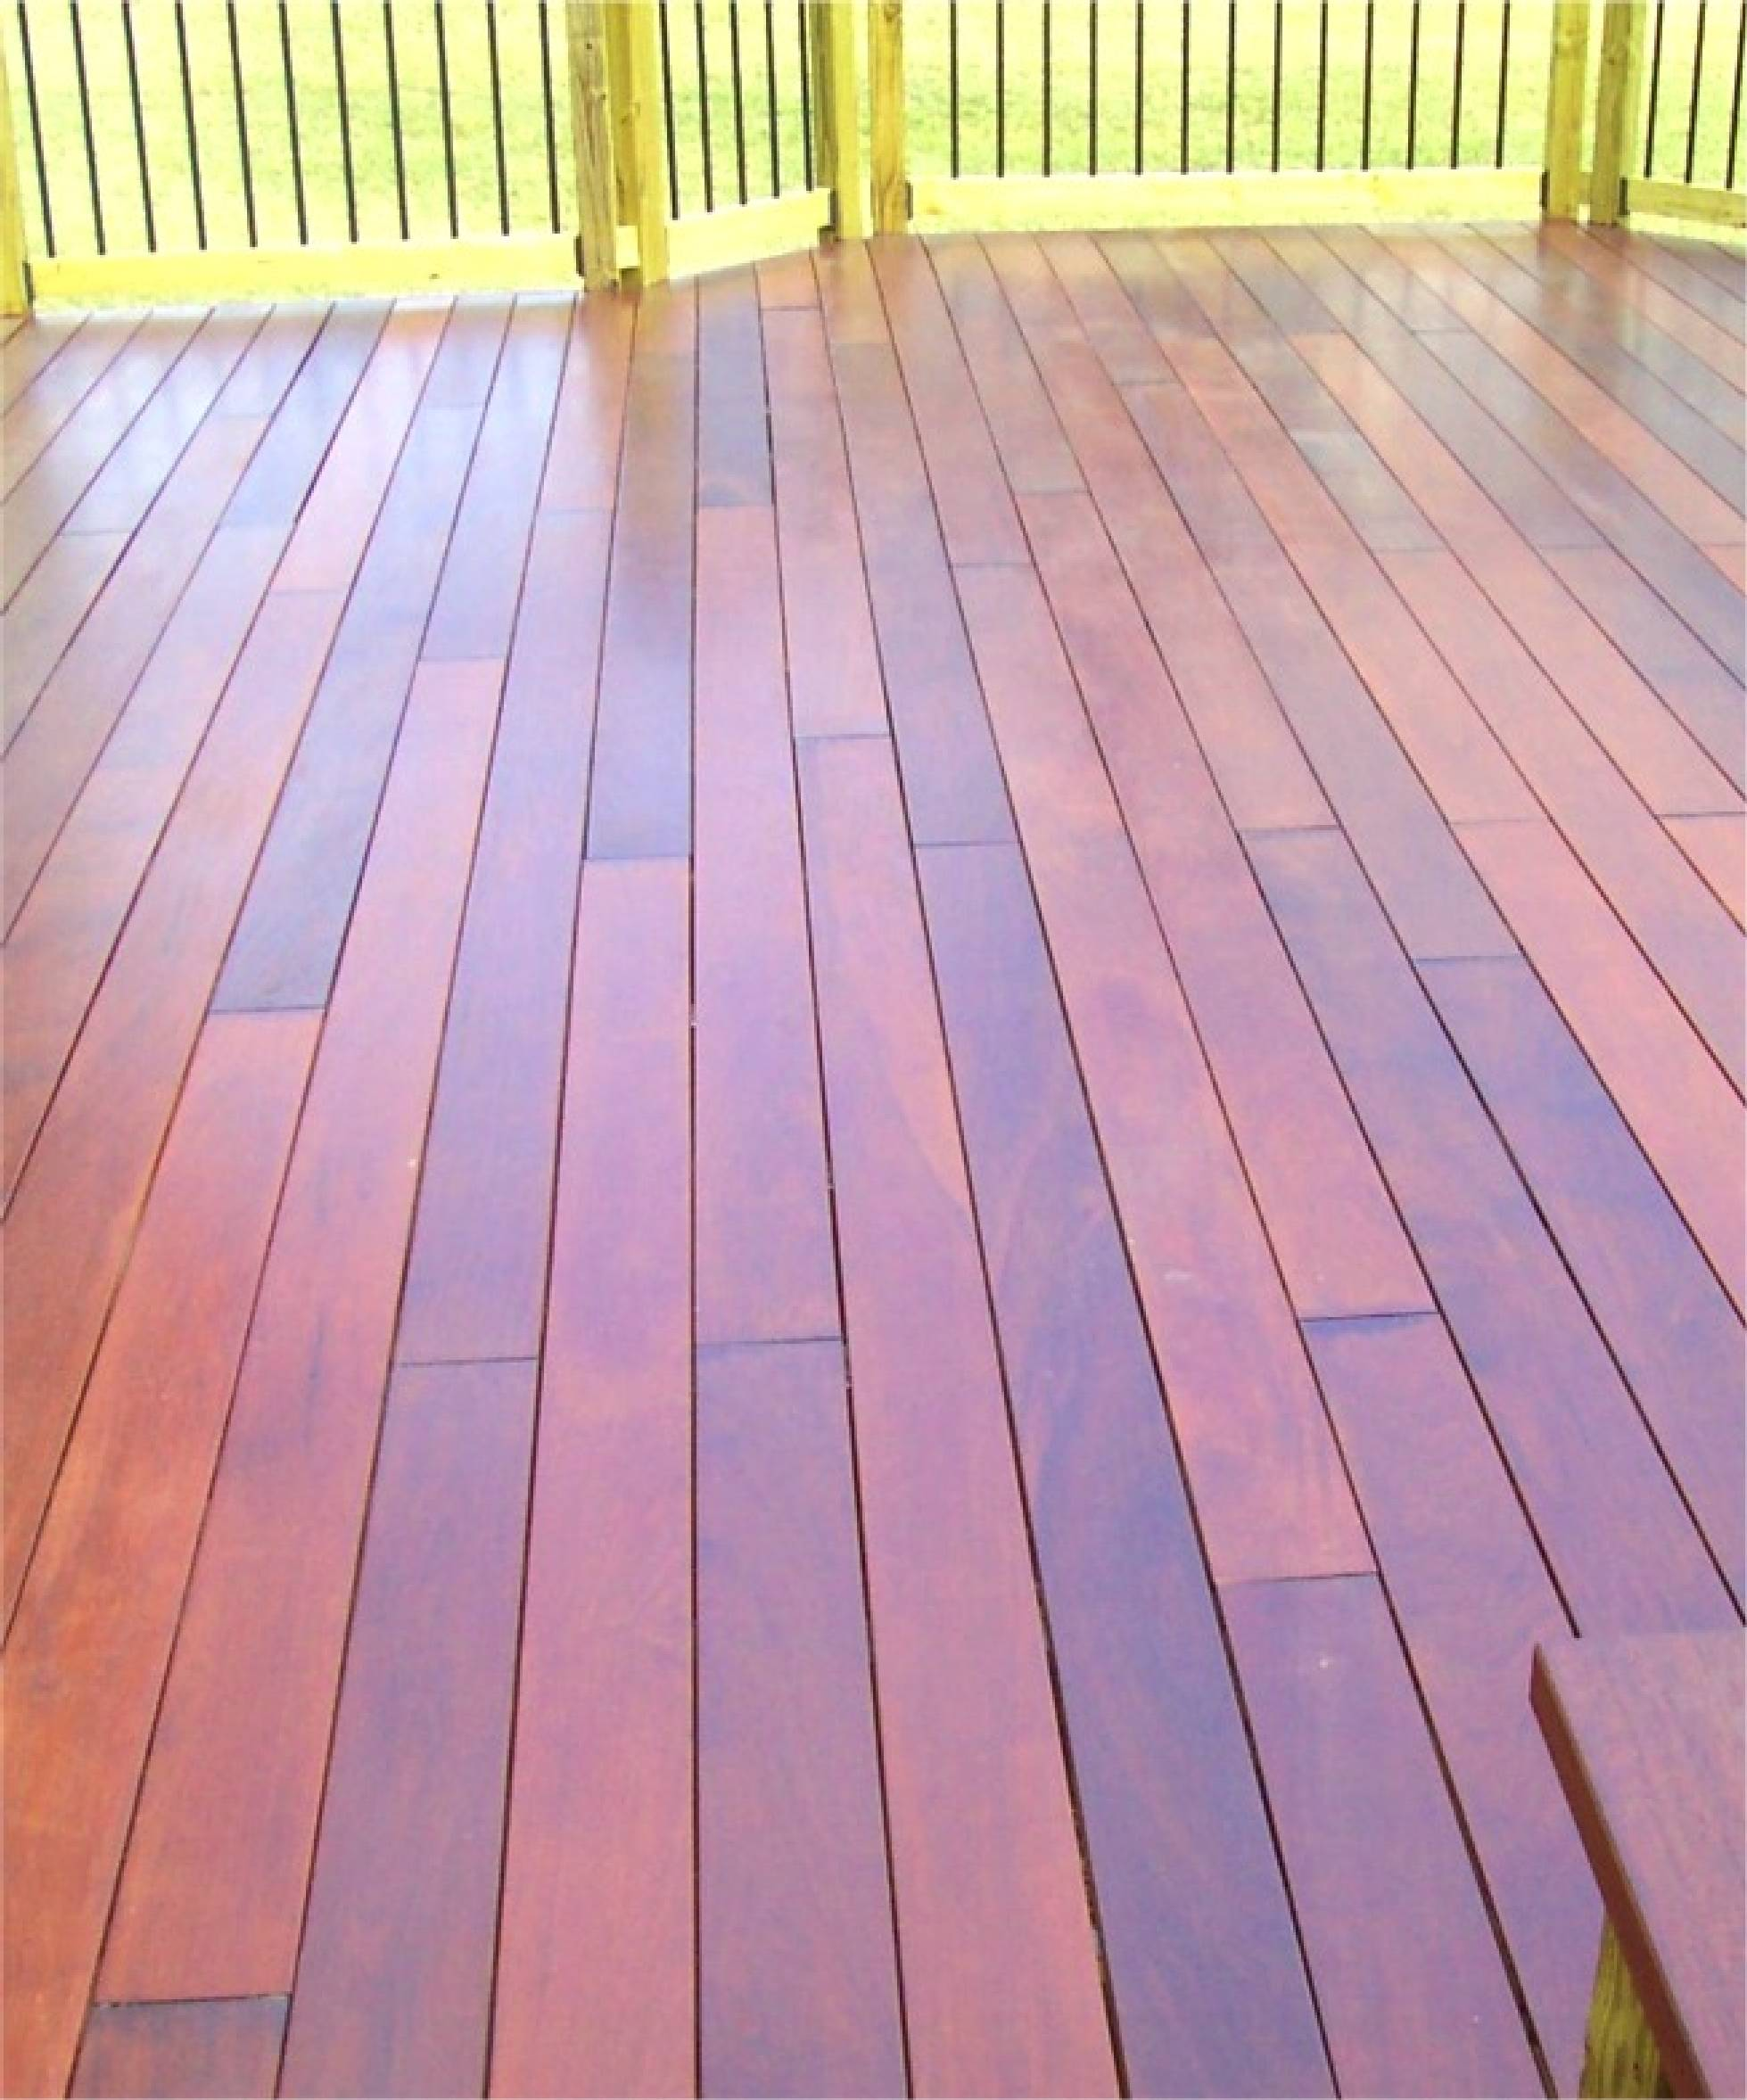 Ipe Wood Decking Maintenance